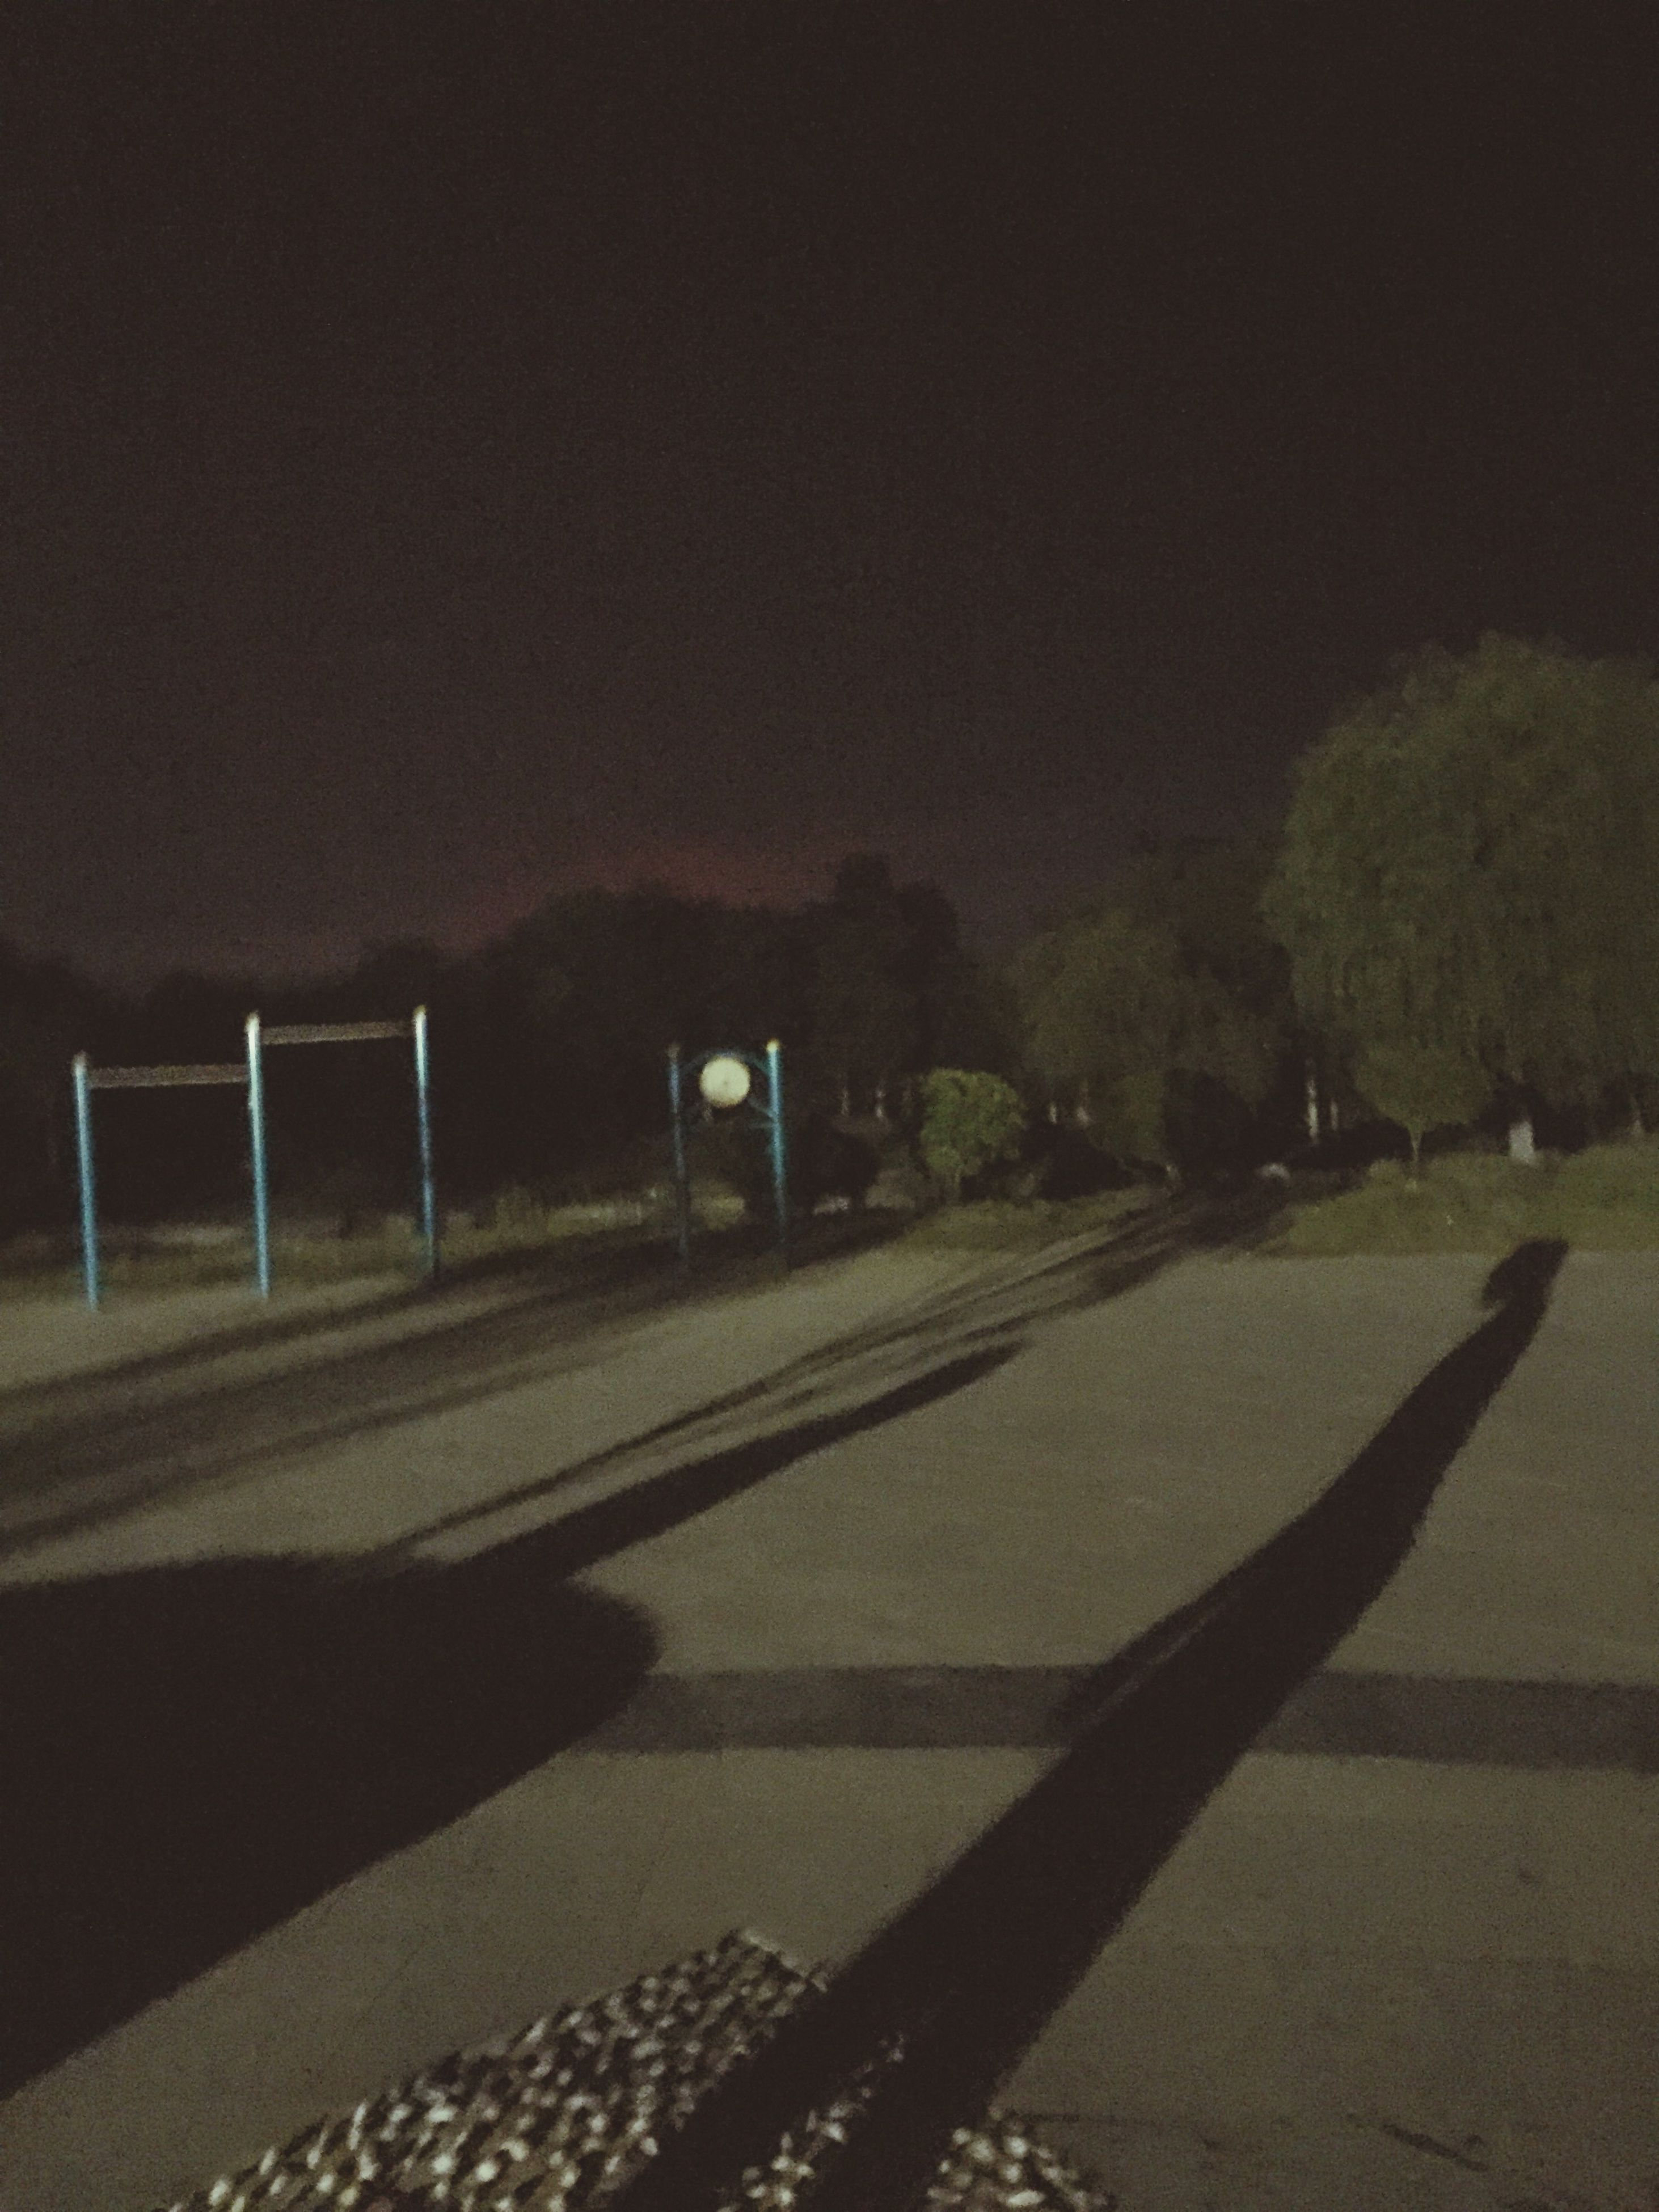 night, illuminated, tree, road, street light, street, dark, railing, transportation, outdoors, copy space, tranquility, no people, nature, clear sky, empty, tranquil scene, sky, high angle view, growth